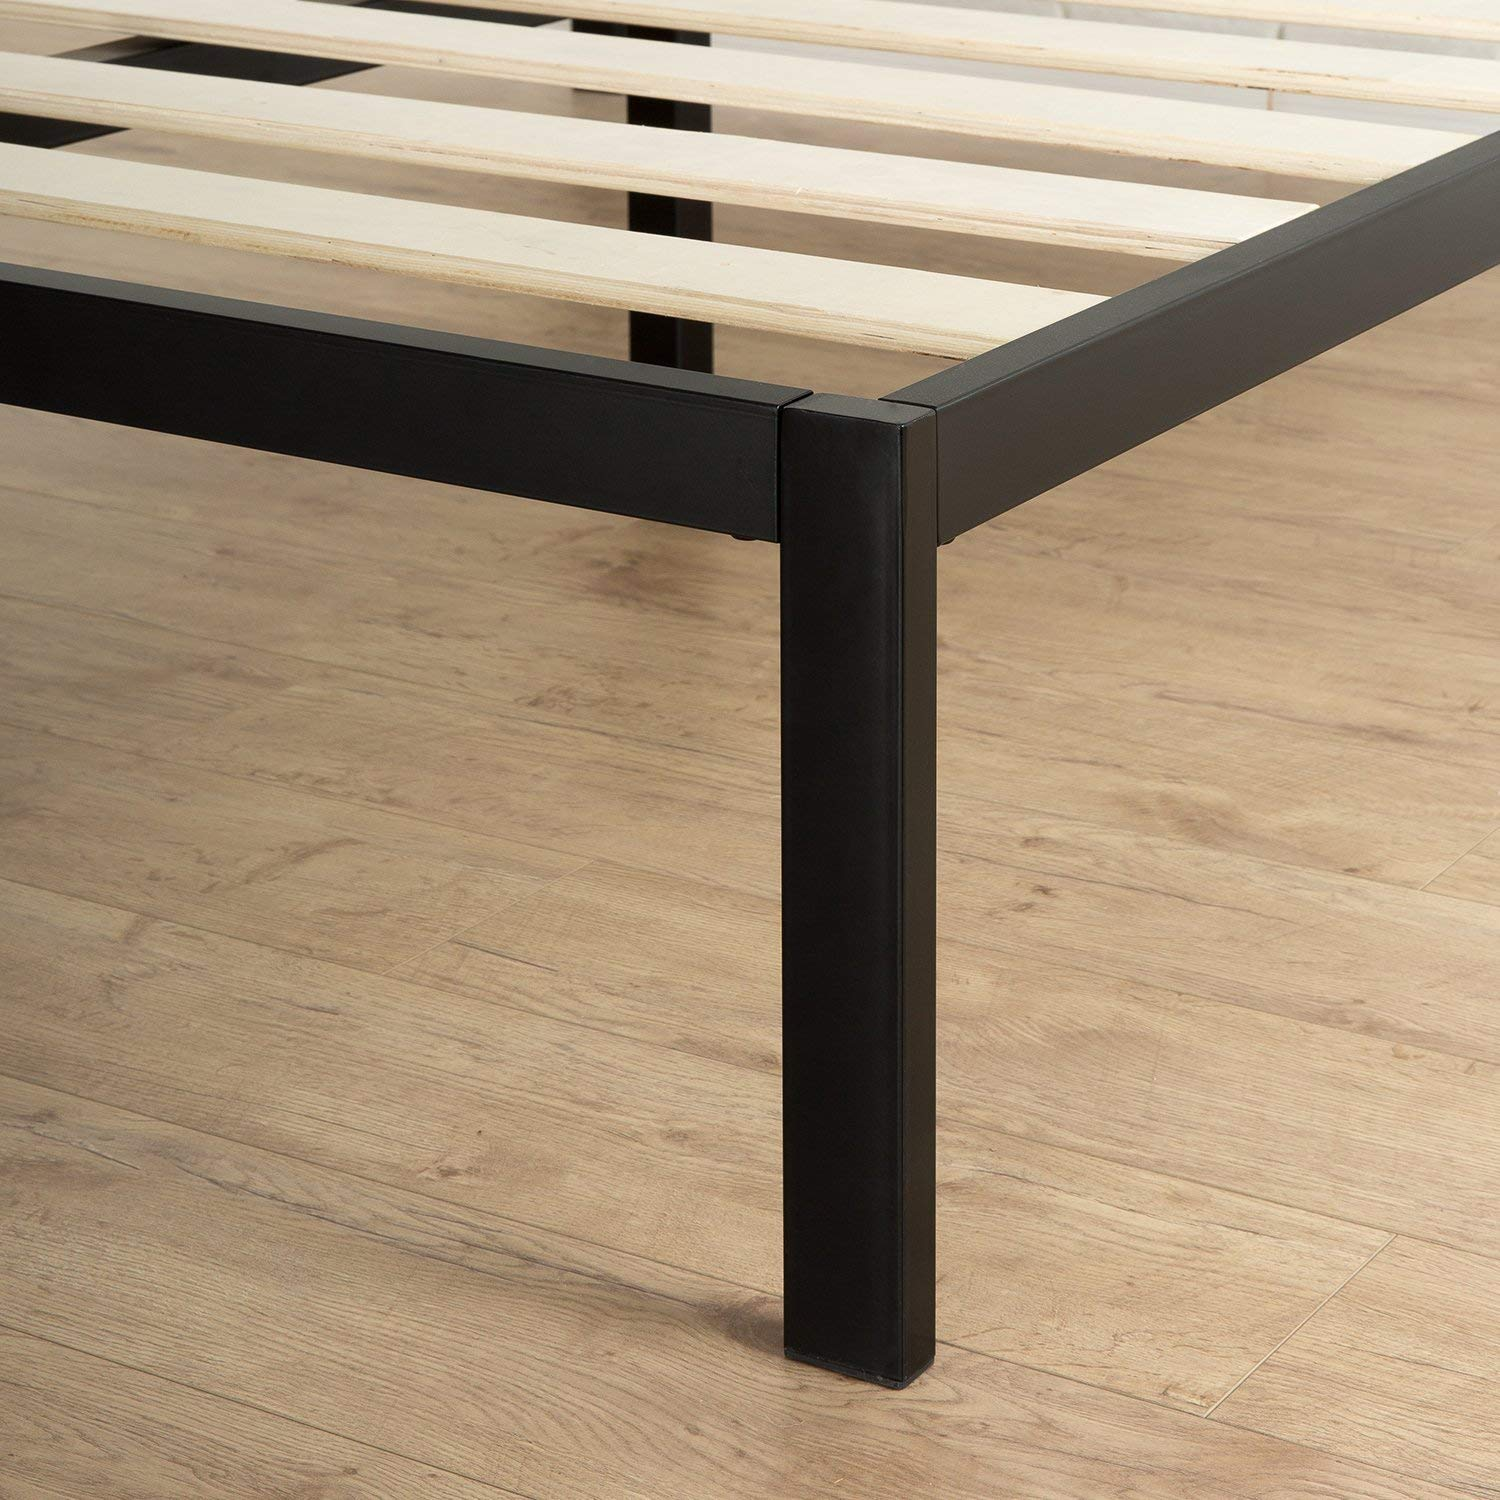 construction of zinus platform bed 1500H